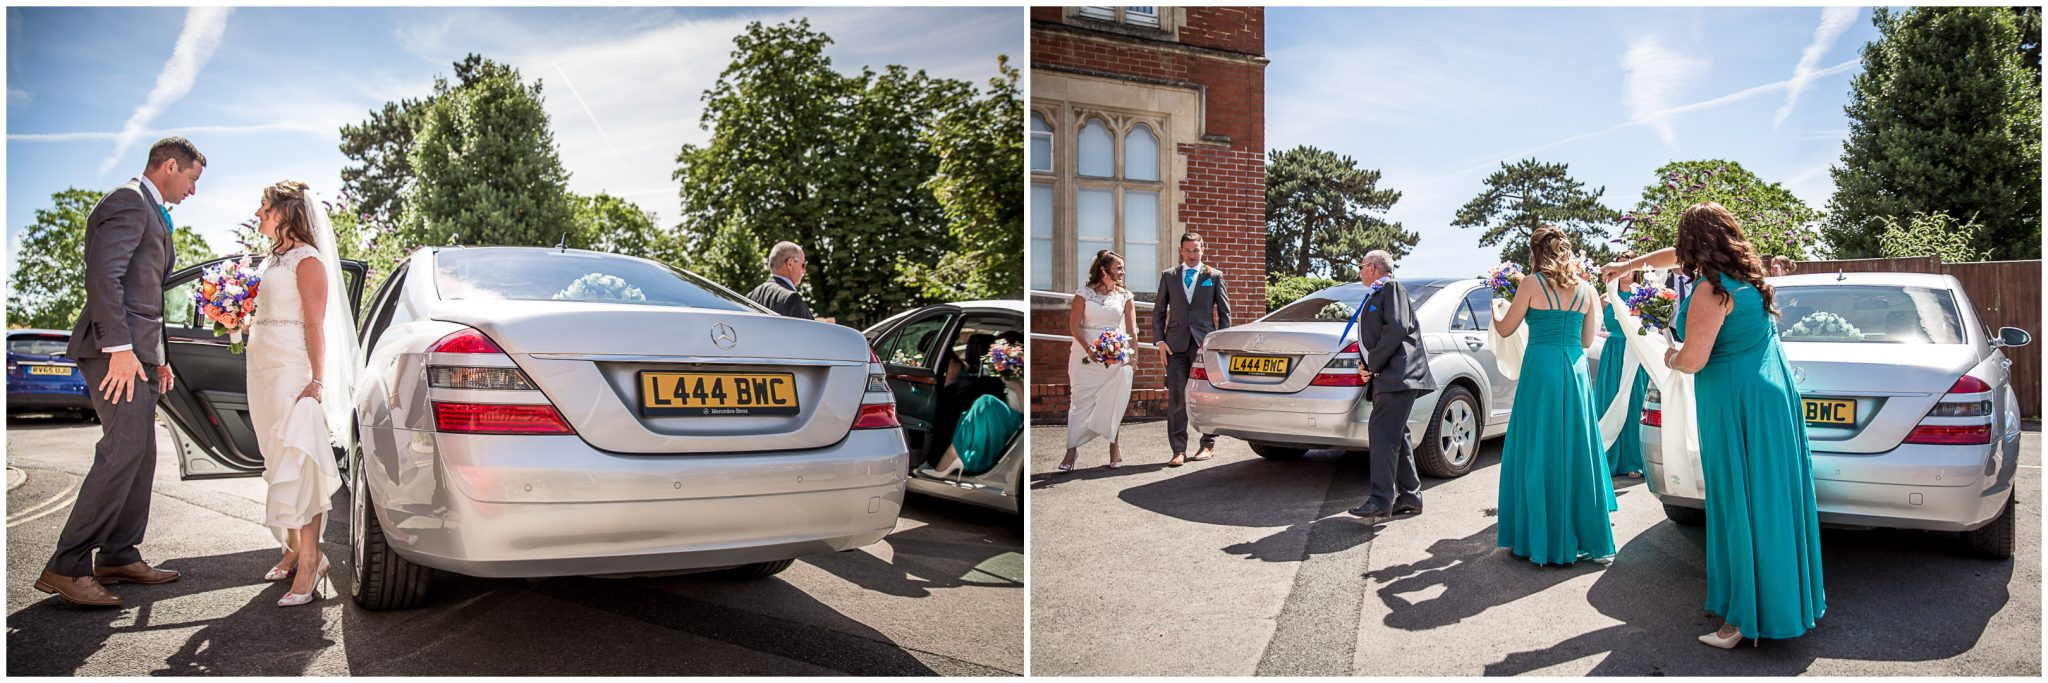 Bride arrives at church and steps out of the wedding car